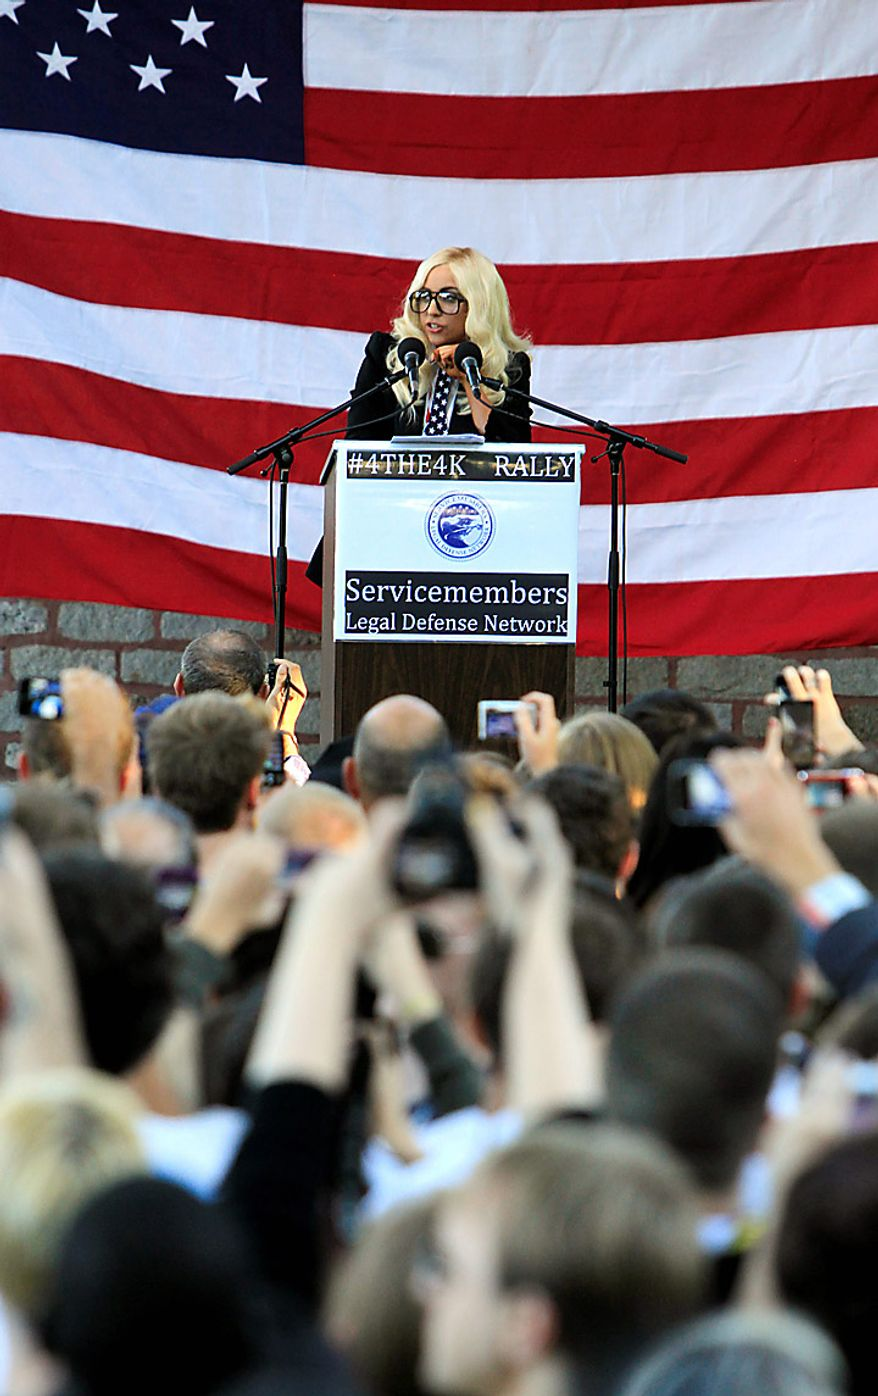 """Members of the crowd react to recording artist Lady Gaga as she speaks at a rally in support of repealing the so-called """"don't ask, don't tell"""" law, in Portland, Maine, on Monday, September 20, 2010. The current law bars gays and lesbians from openly serving in the military, and a spokesperson said that Lady Gaga wants Maine's Republican senators to cast votes this week to help repeal the military's """"don't ask., don't tell"""" policy on gays in the military. (AP Photo/Pat Wellenbach)"""